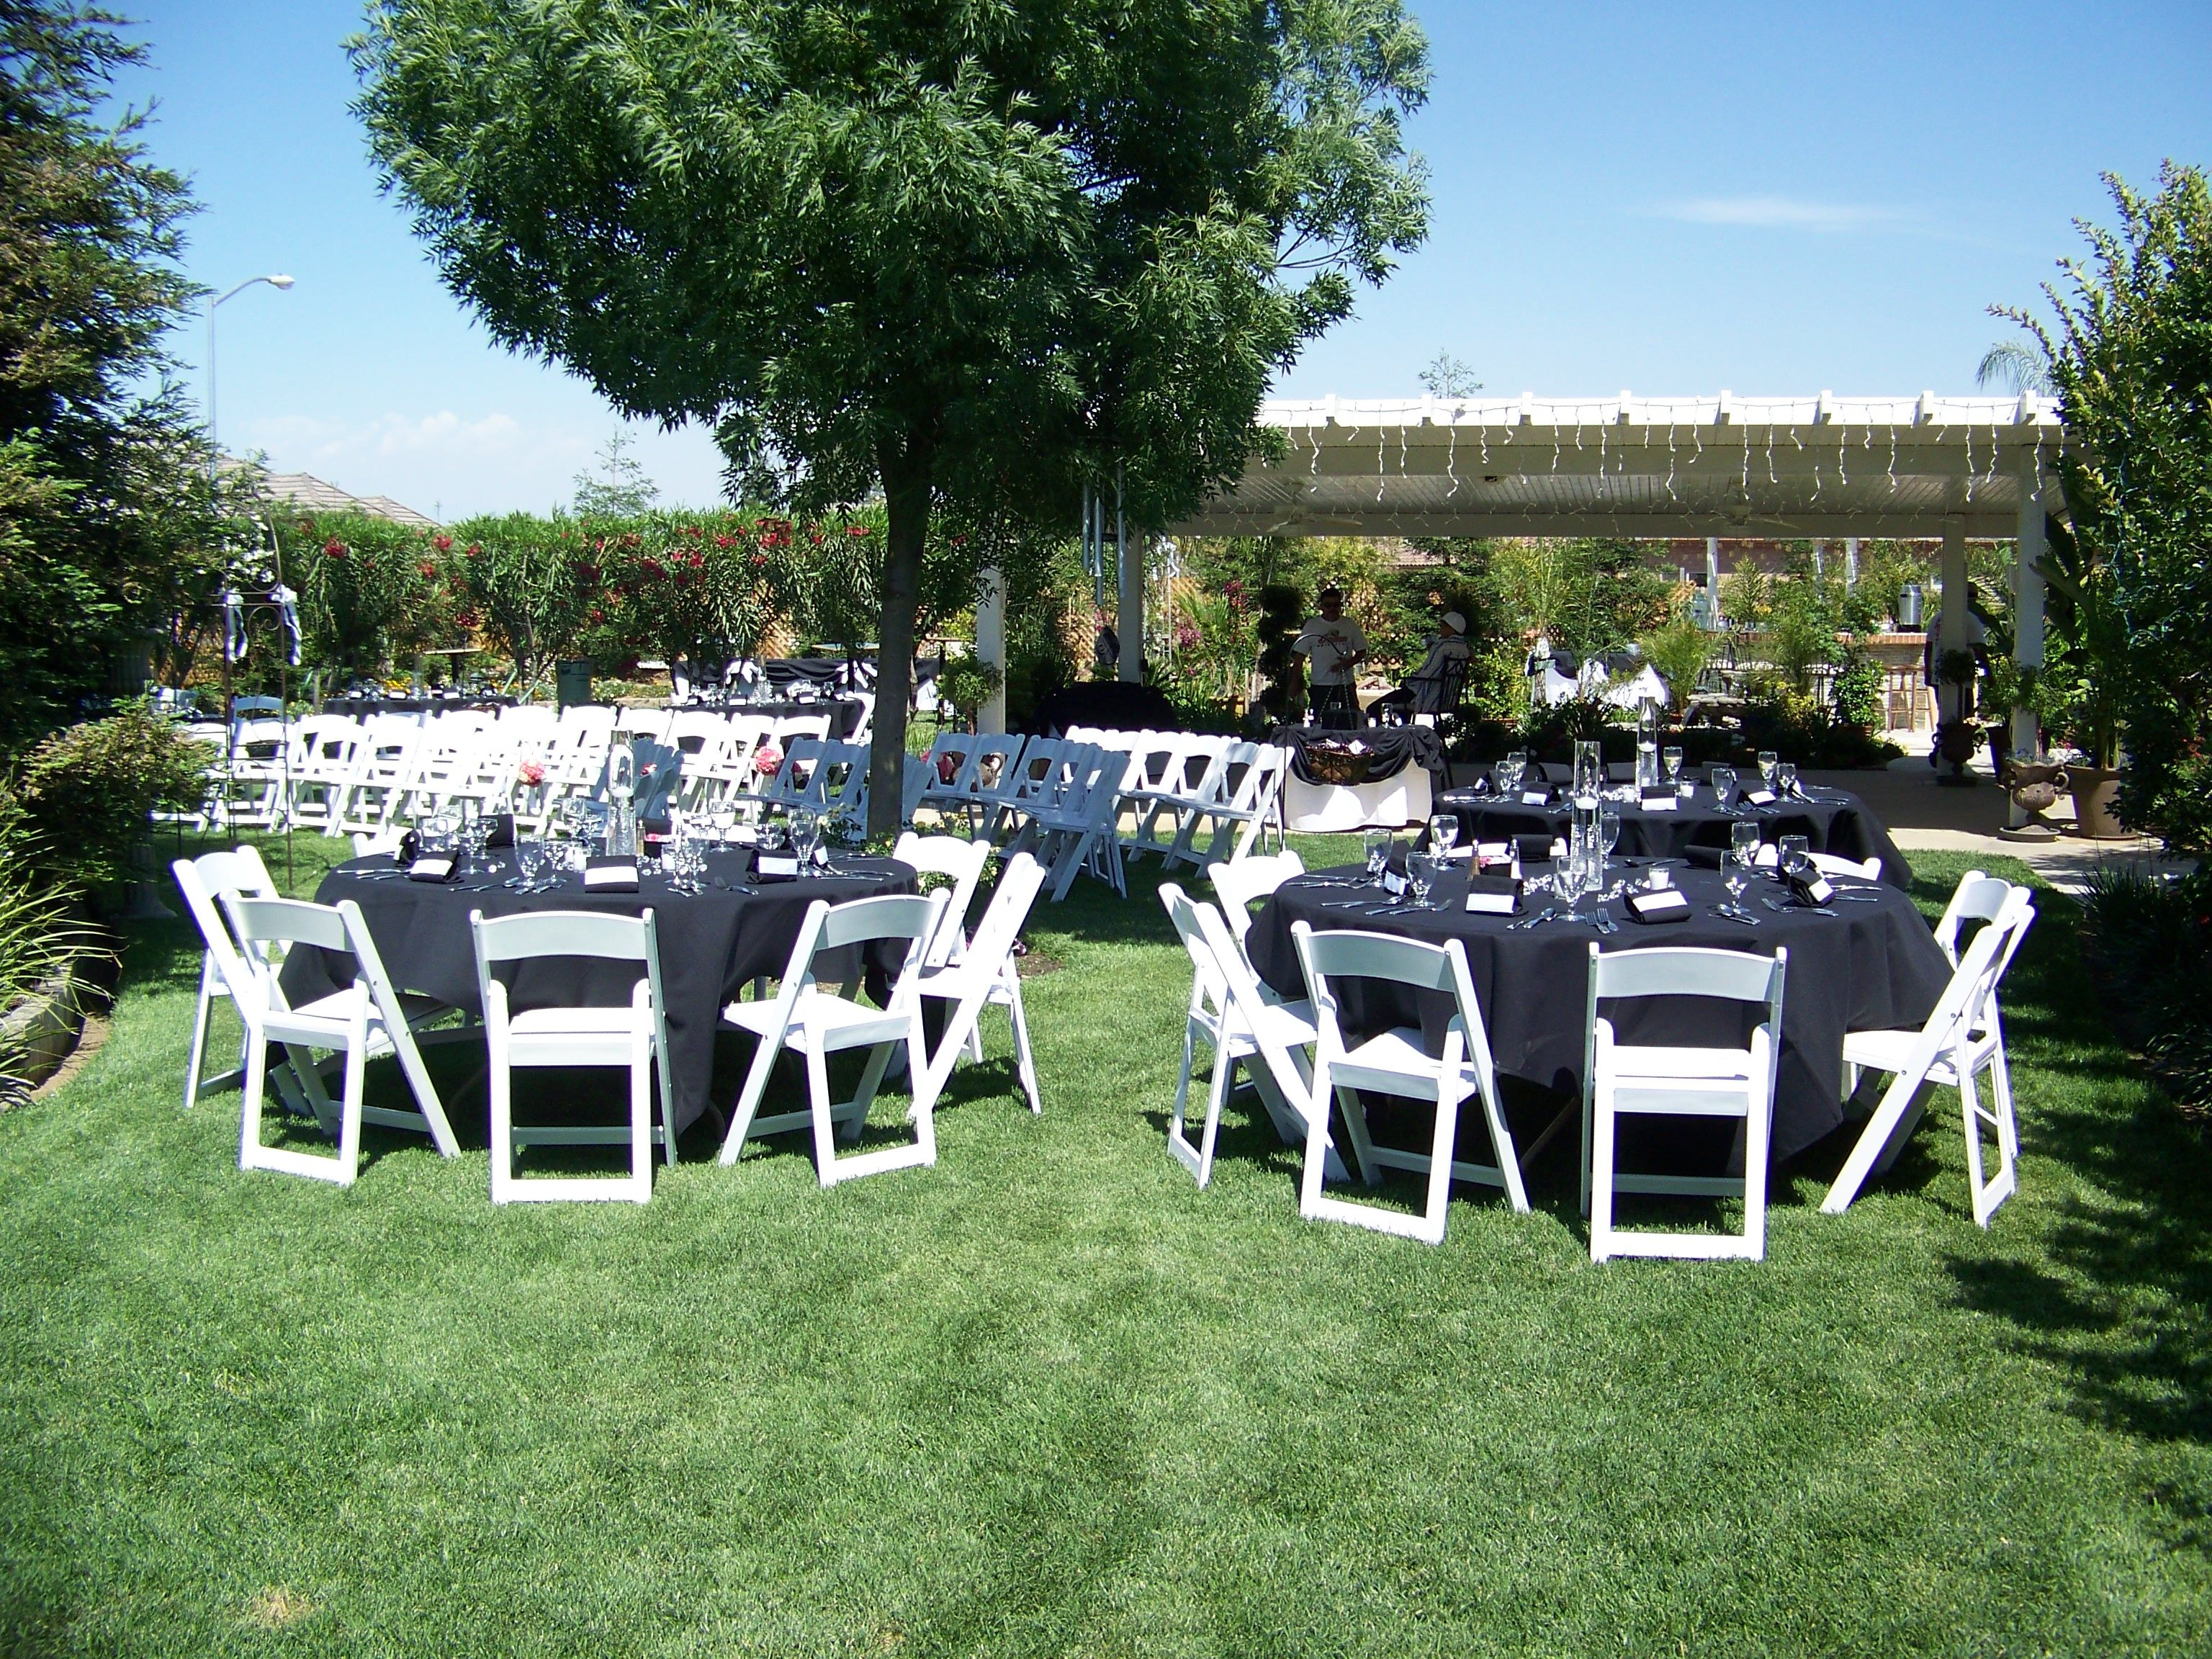 Black folding chairs wedding - Reception Layout In Backyard With White Padded Wedding Chairs